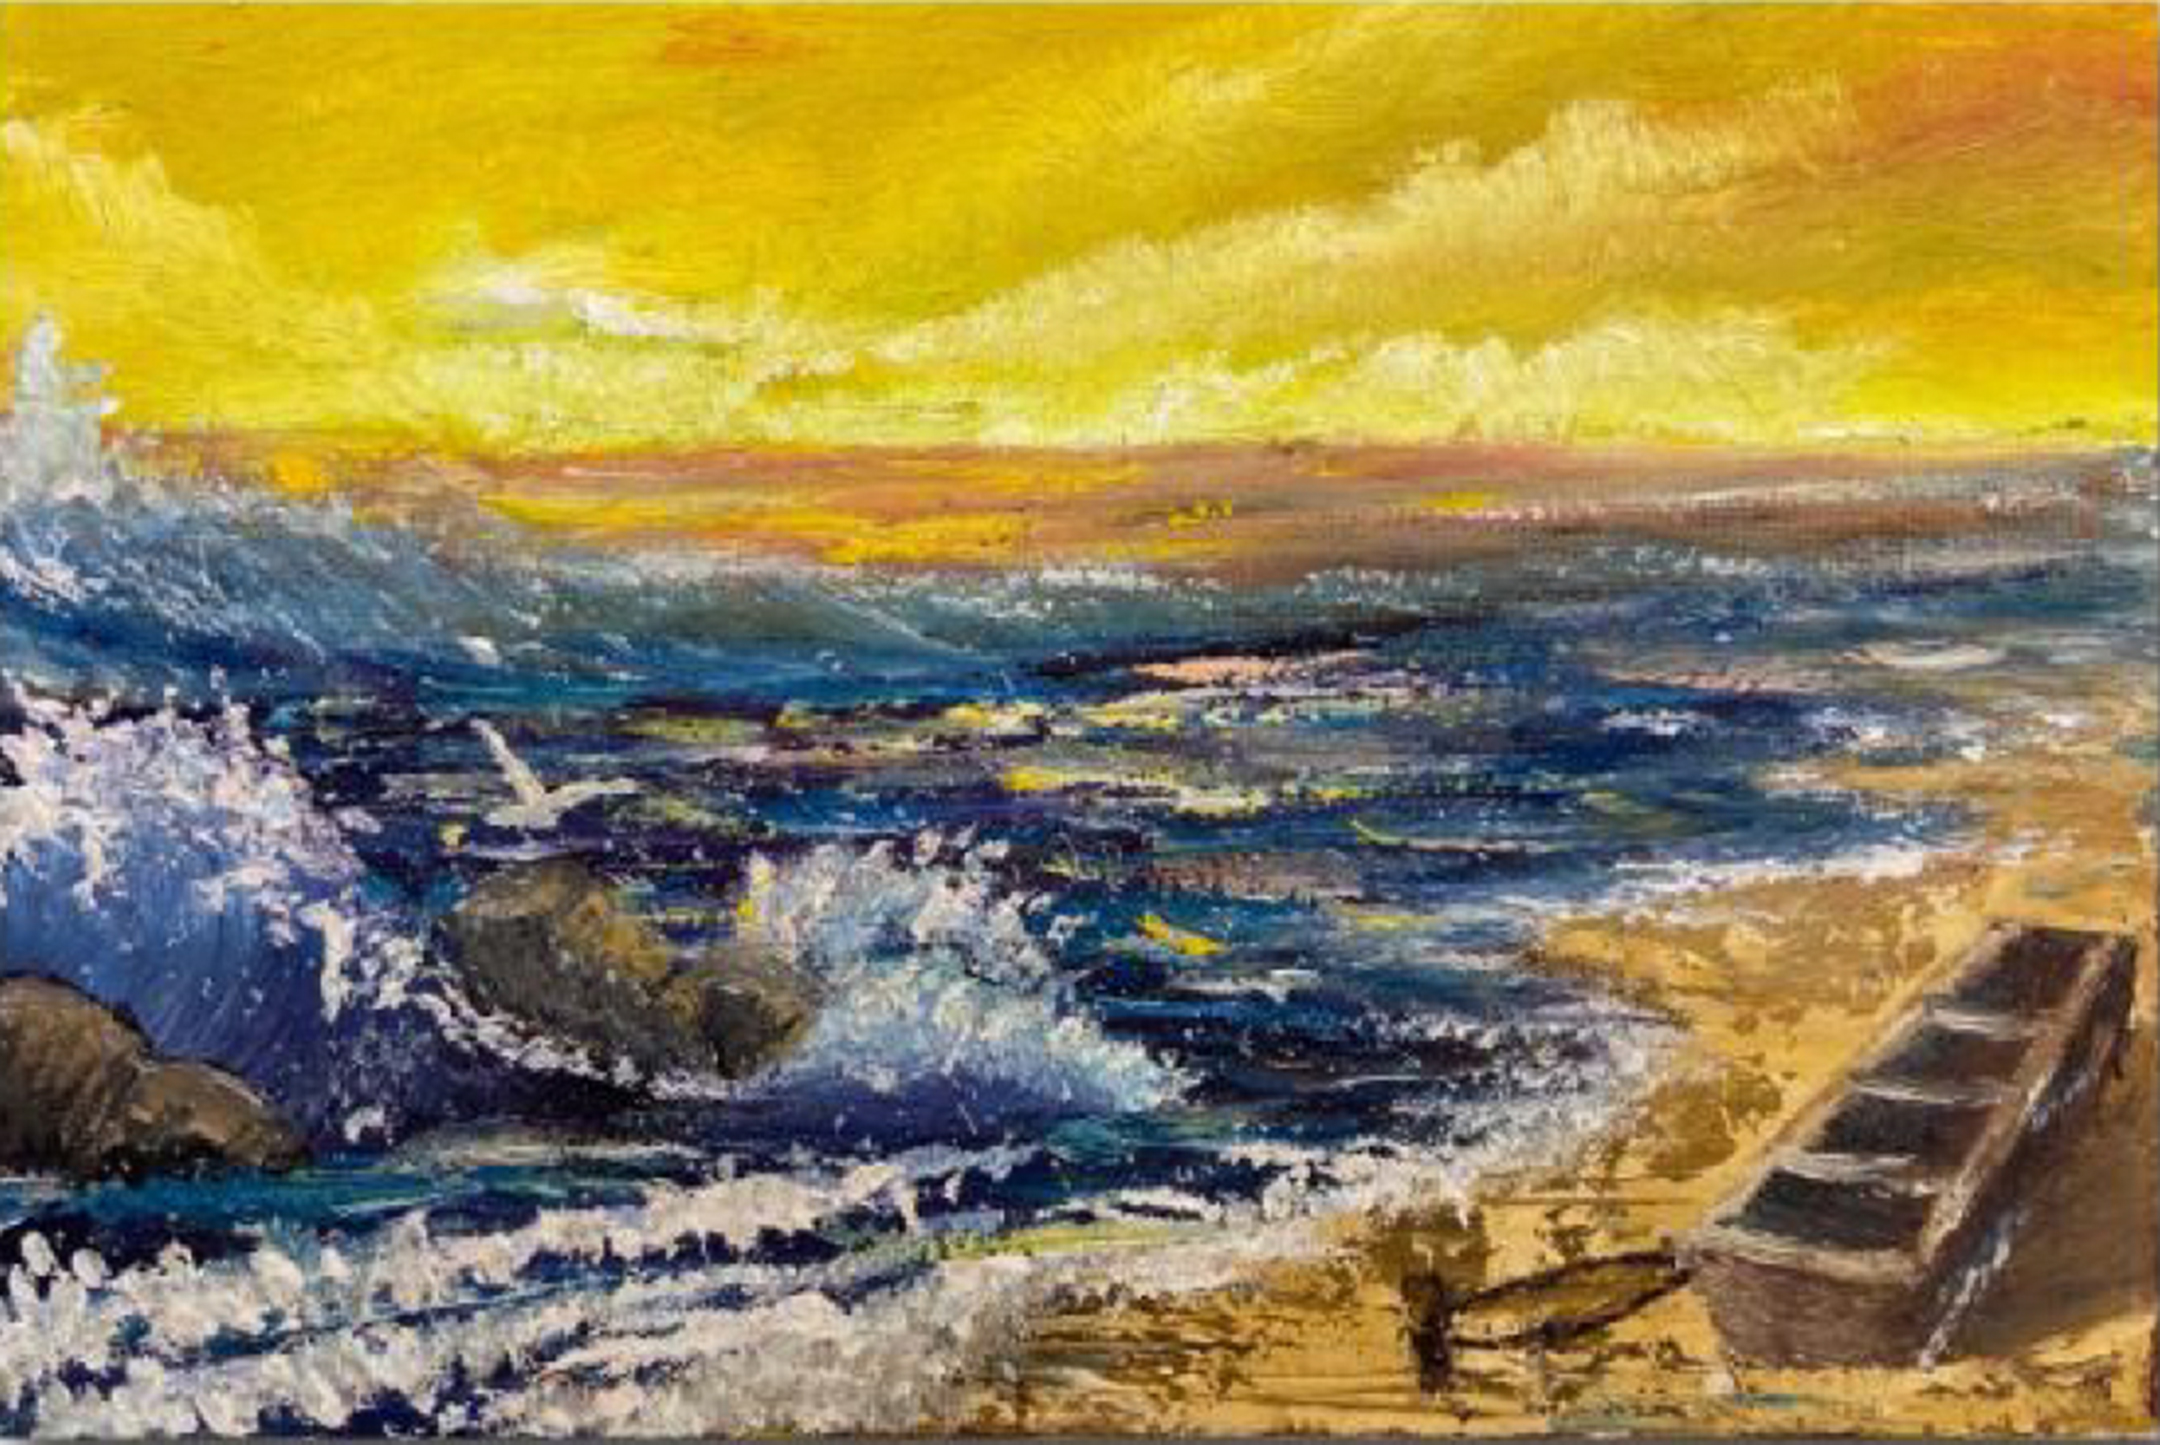 Painting of a beach with waves crashing in from the left